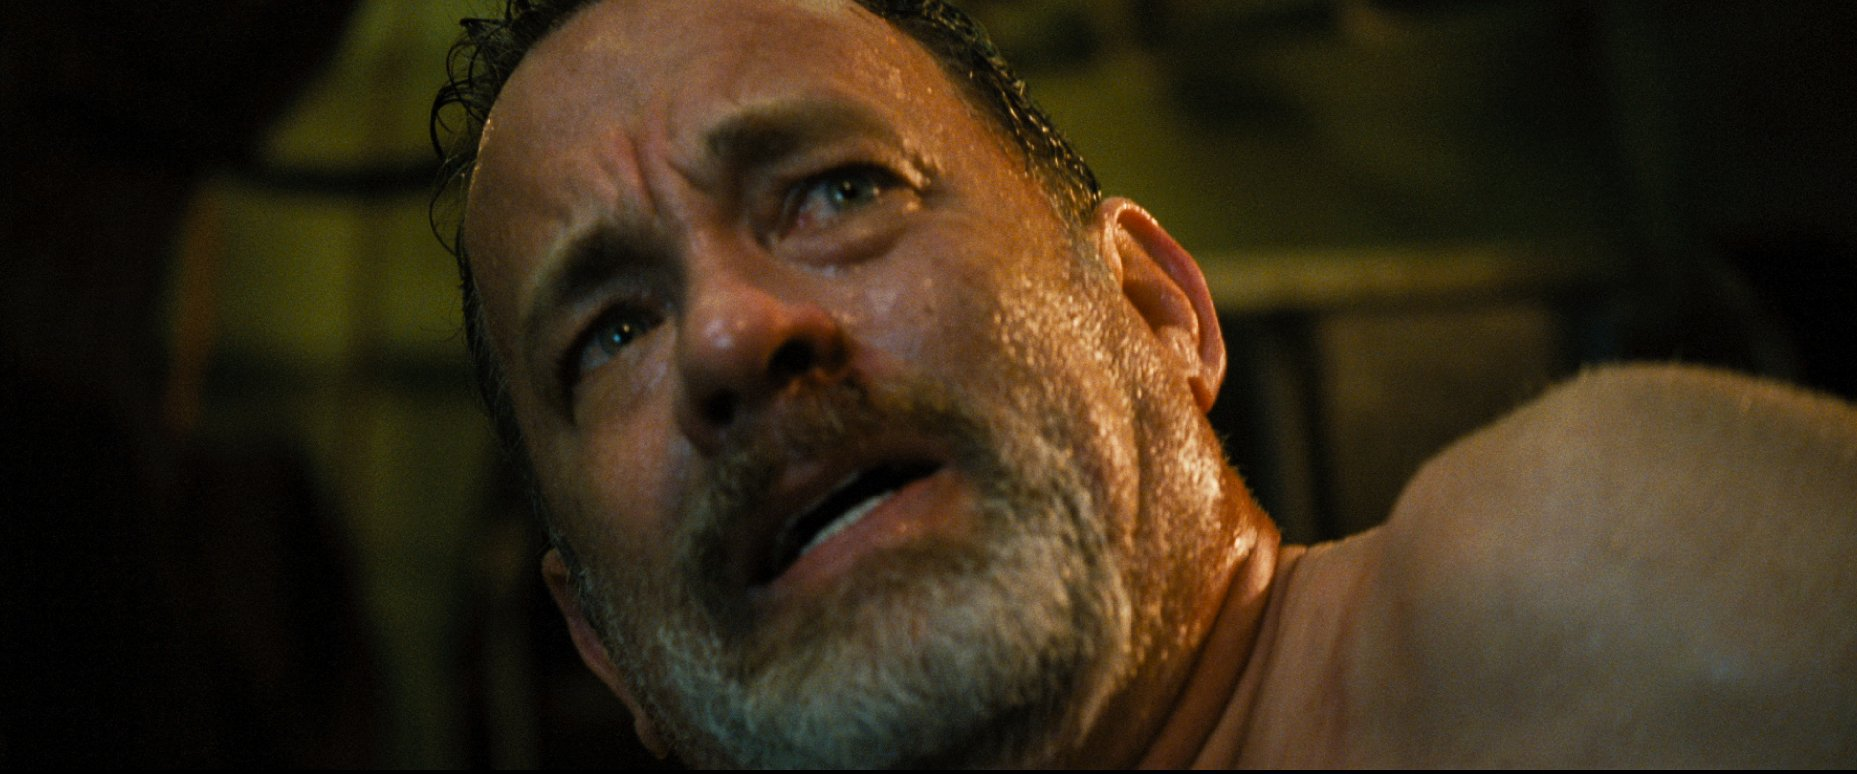 "Tom Hanks im neuen Piraterie-Drama ""Captain Phillips"": Neuer deutscher Trailer"